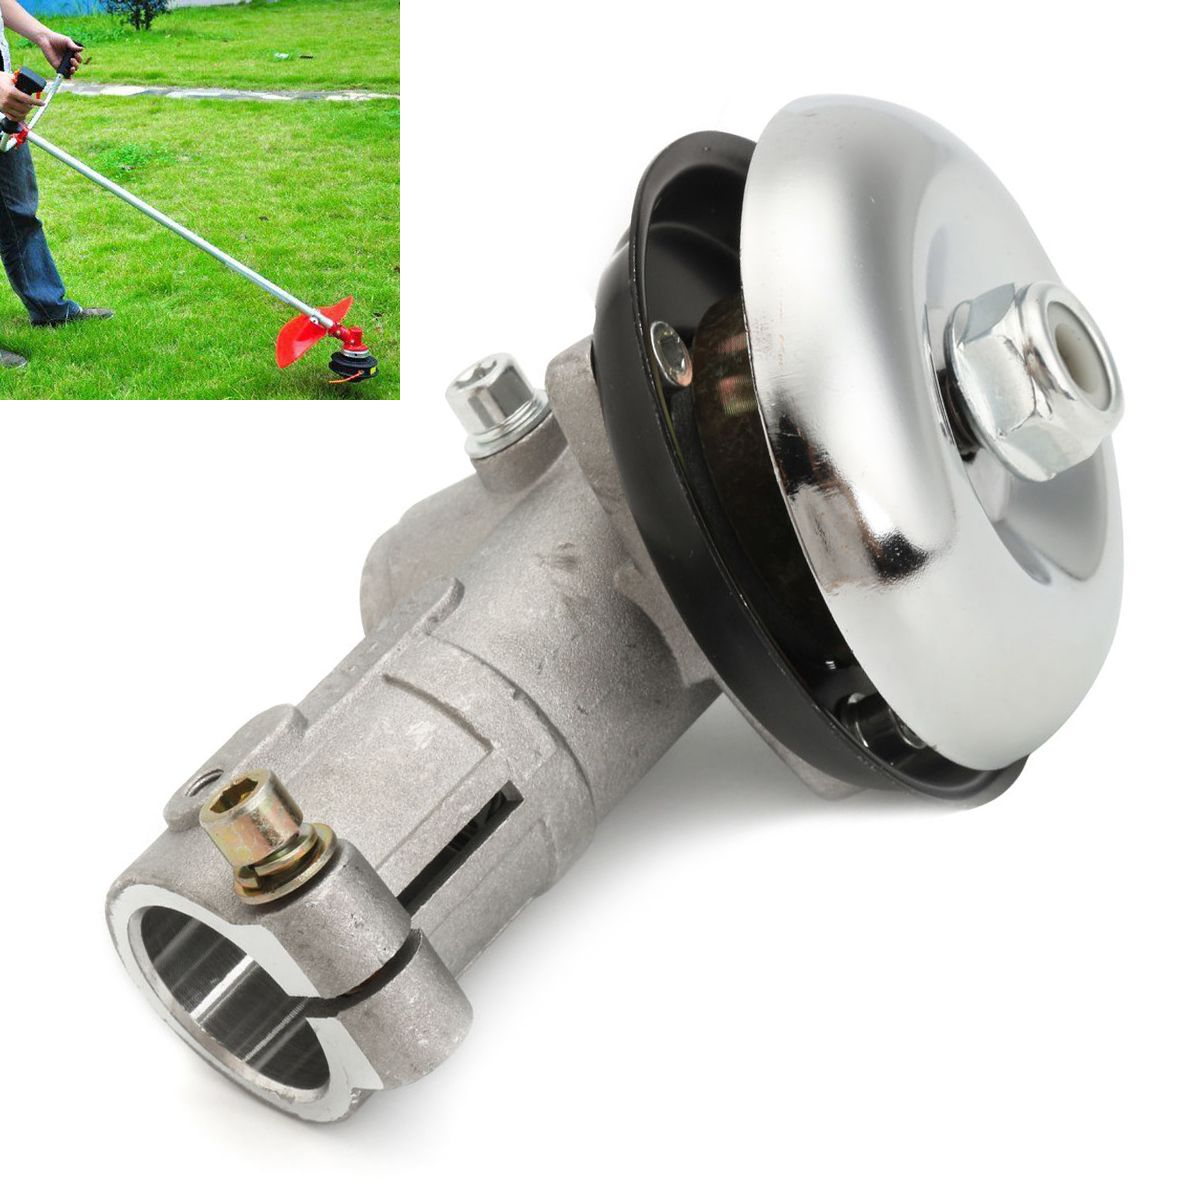 Mayitr 26mm 7 Tooth Splin Gearhead Gearbox for Trimmer Strimmer Brush Cutter Lawnmower Garden Tools durable 26mm gearhead gearbox brush cutter trimmer replace parts lawn mower spares mayitr garden tools